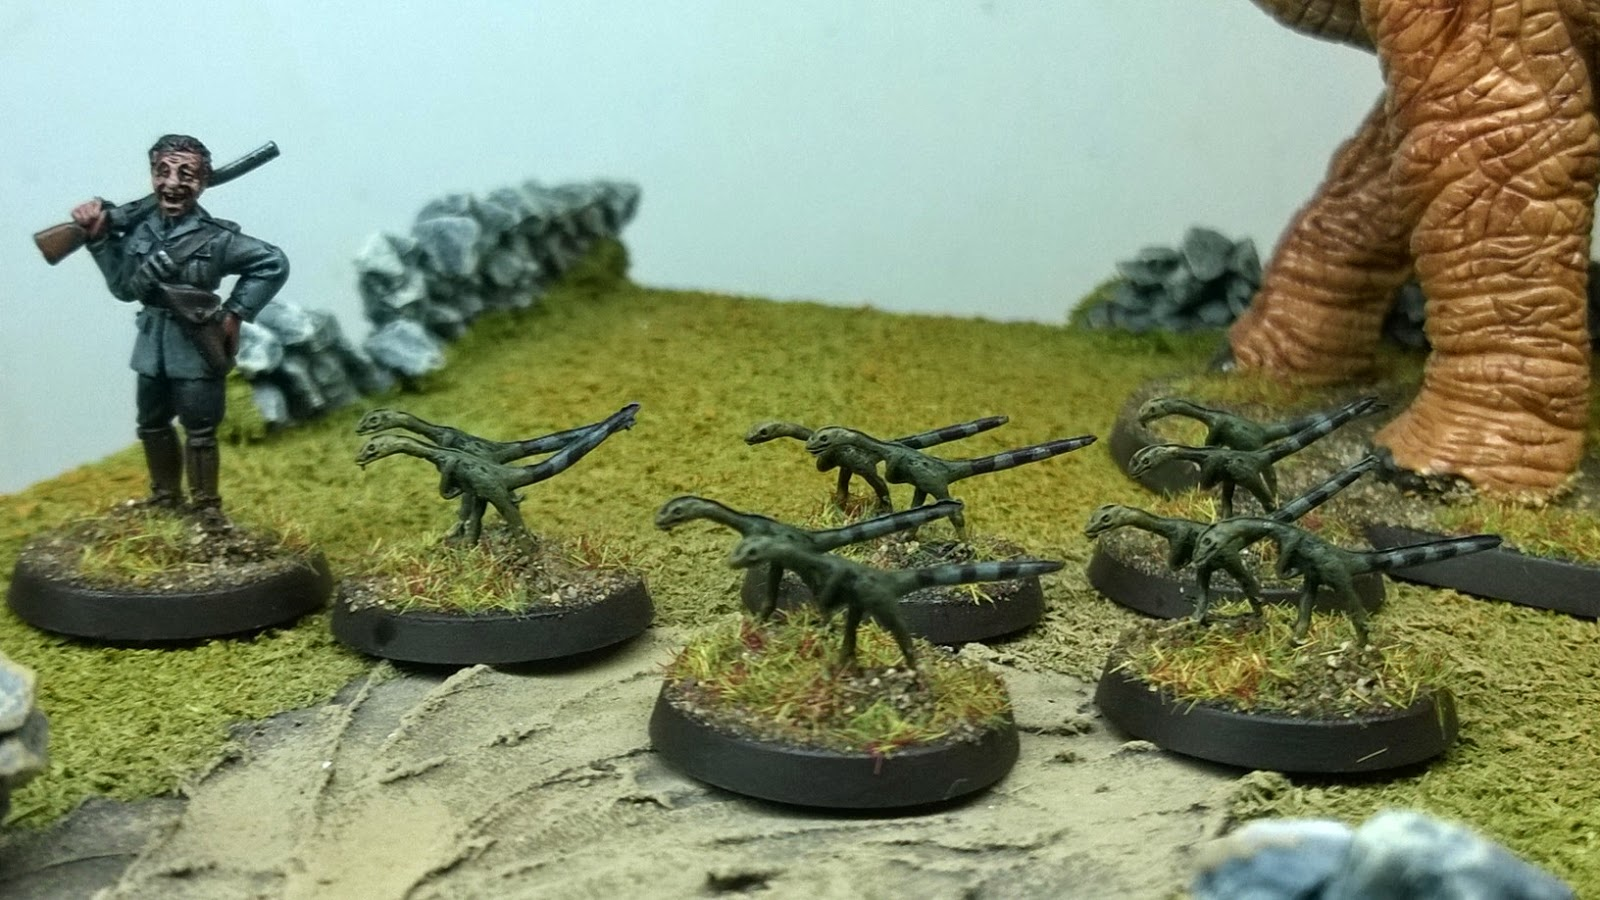 hlbs Compsognathus 28mm dinosaur hunting dino mutton chops